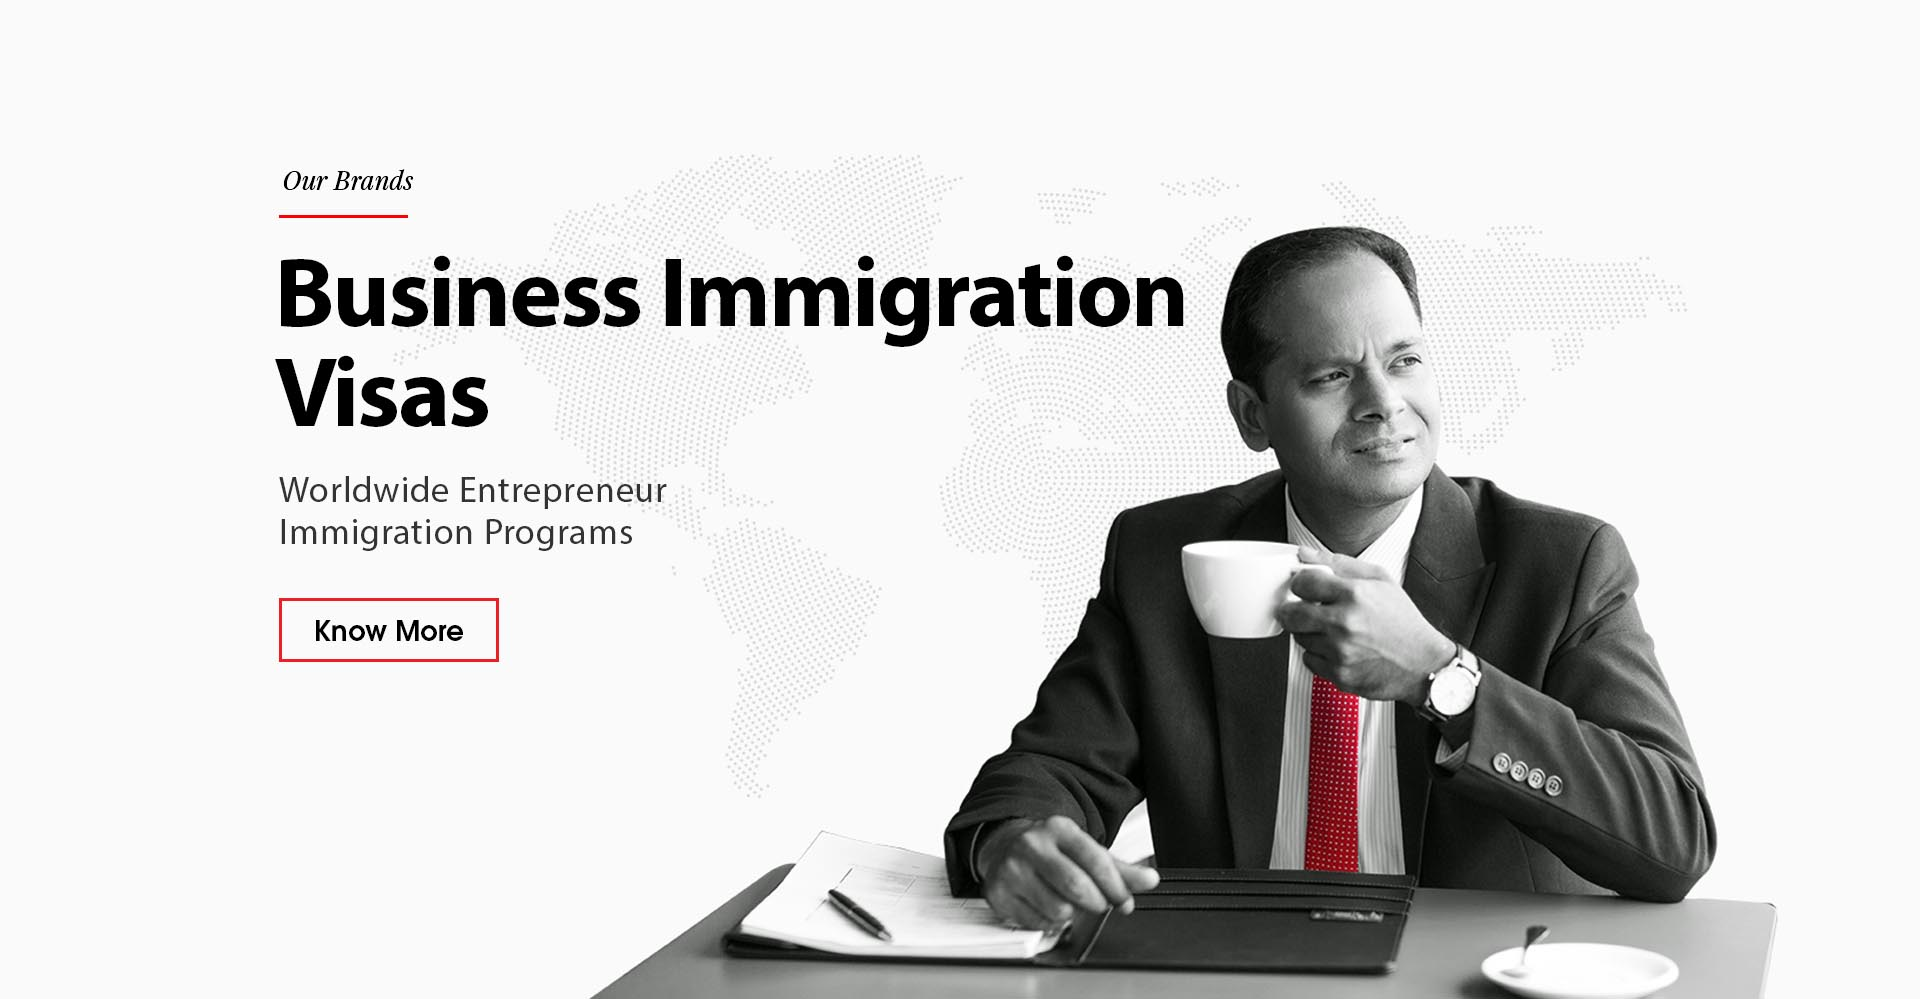 Business Immigration Visas